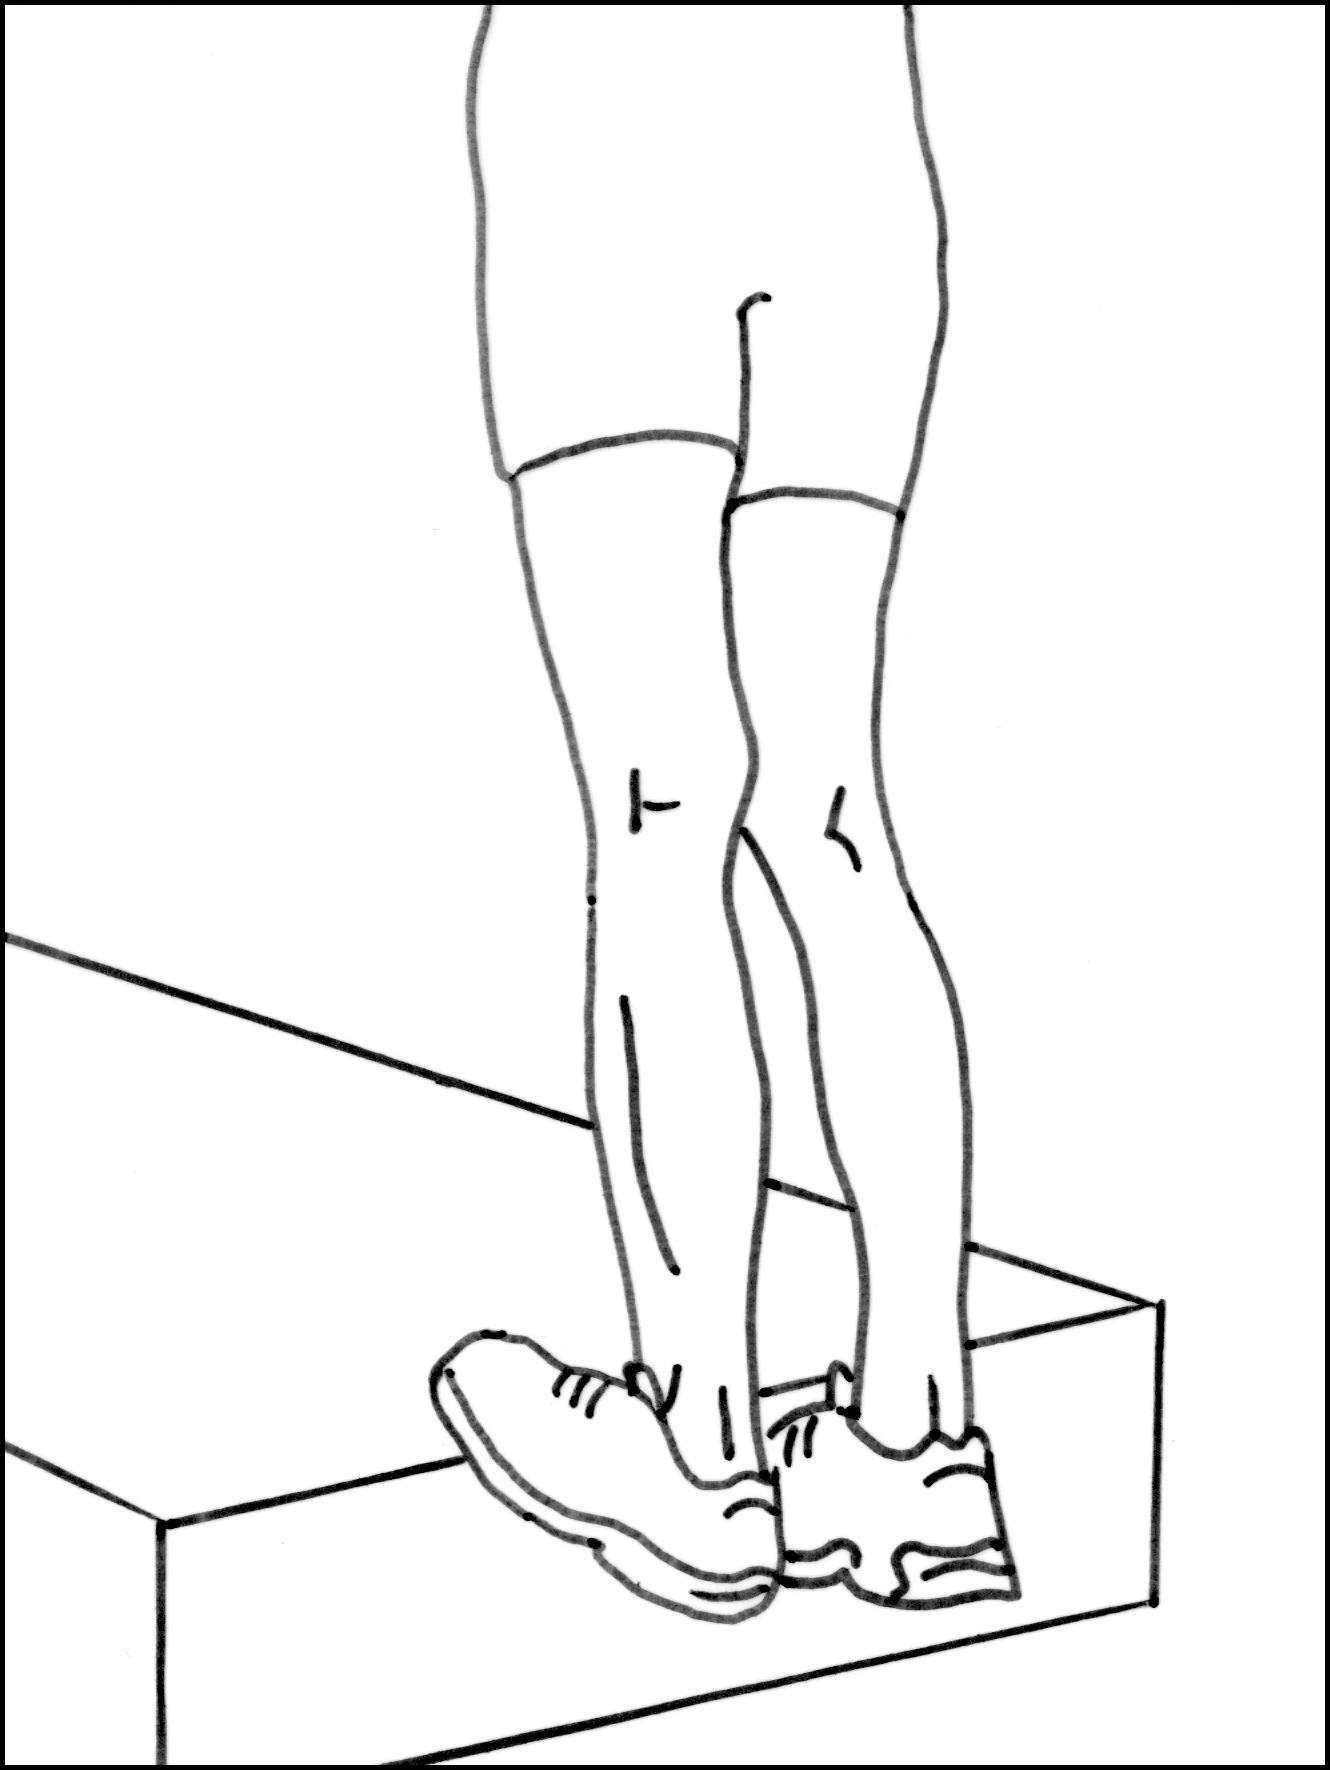 Fig 3.